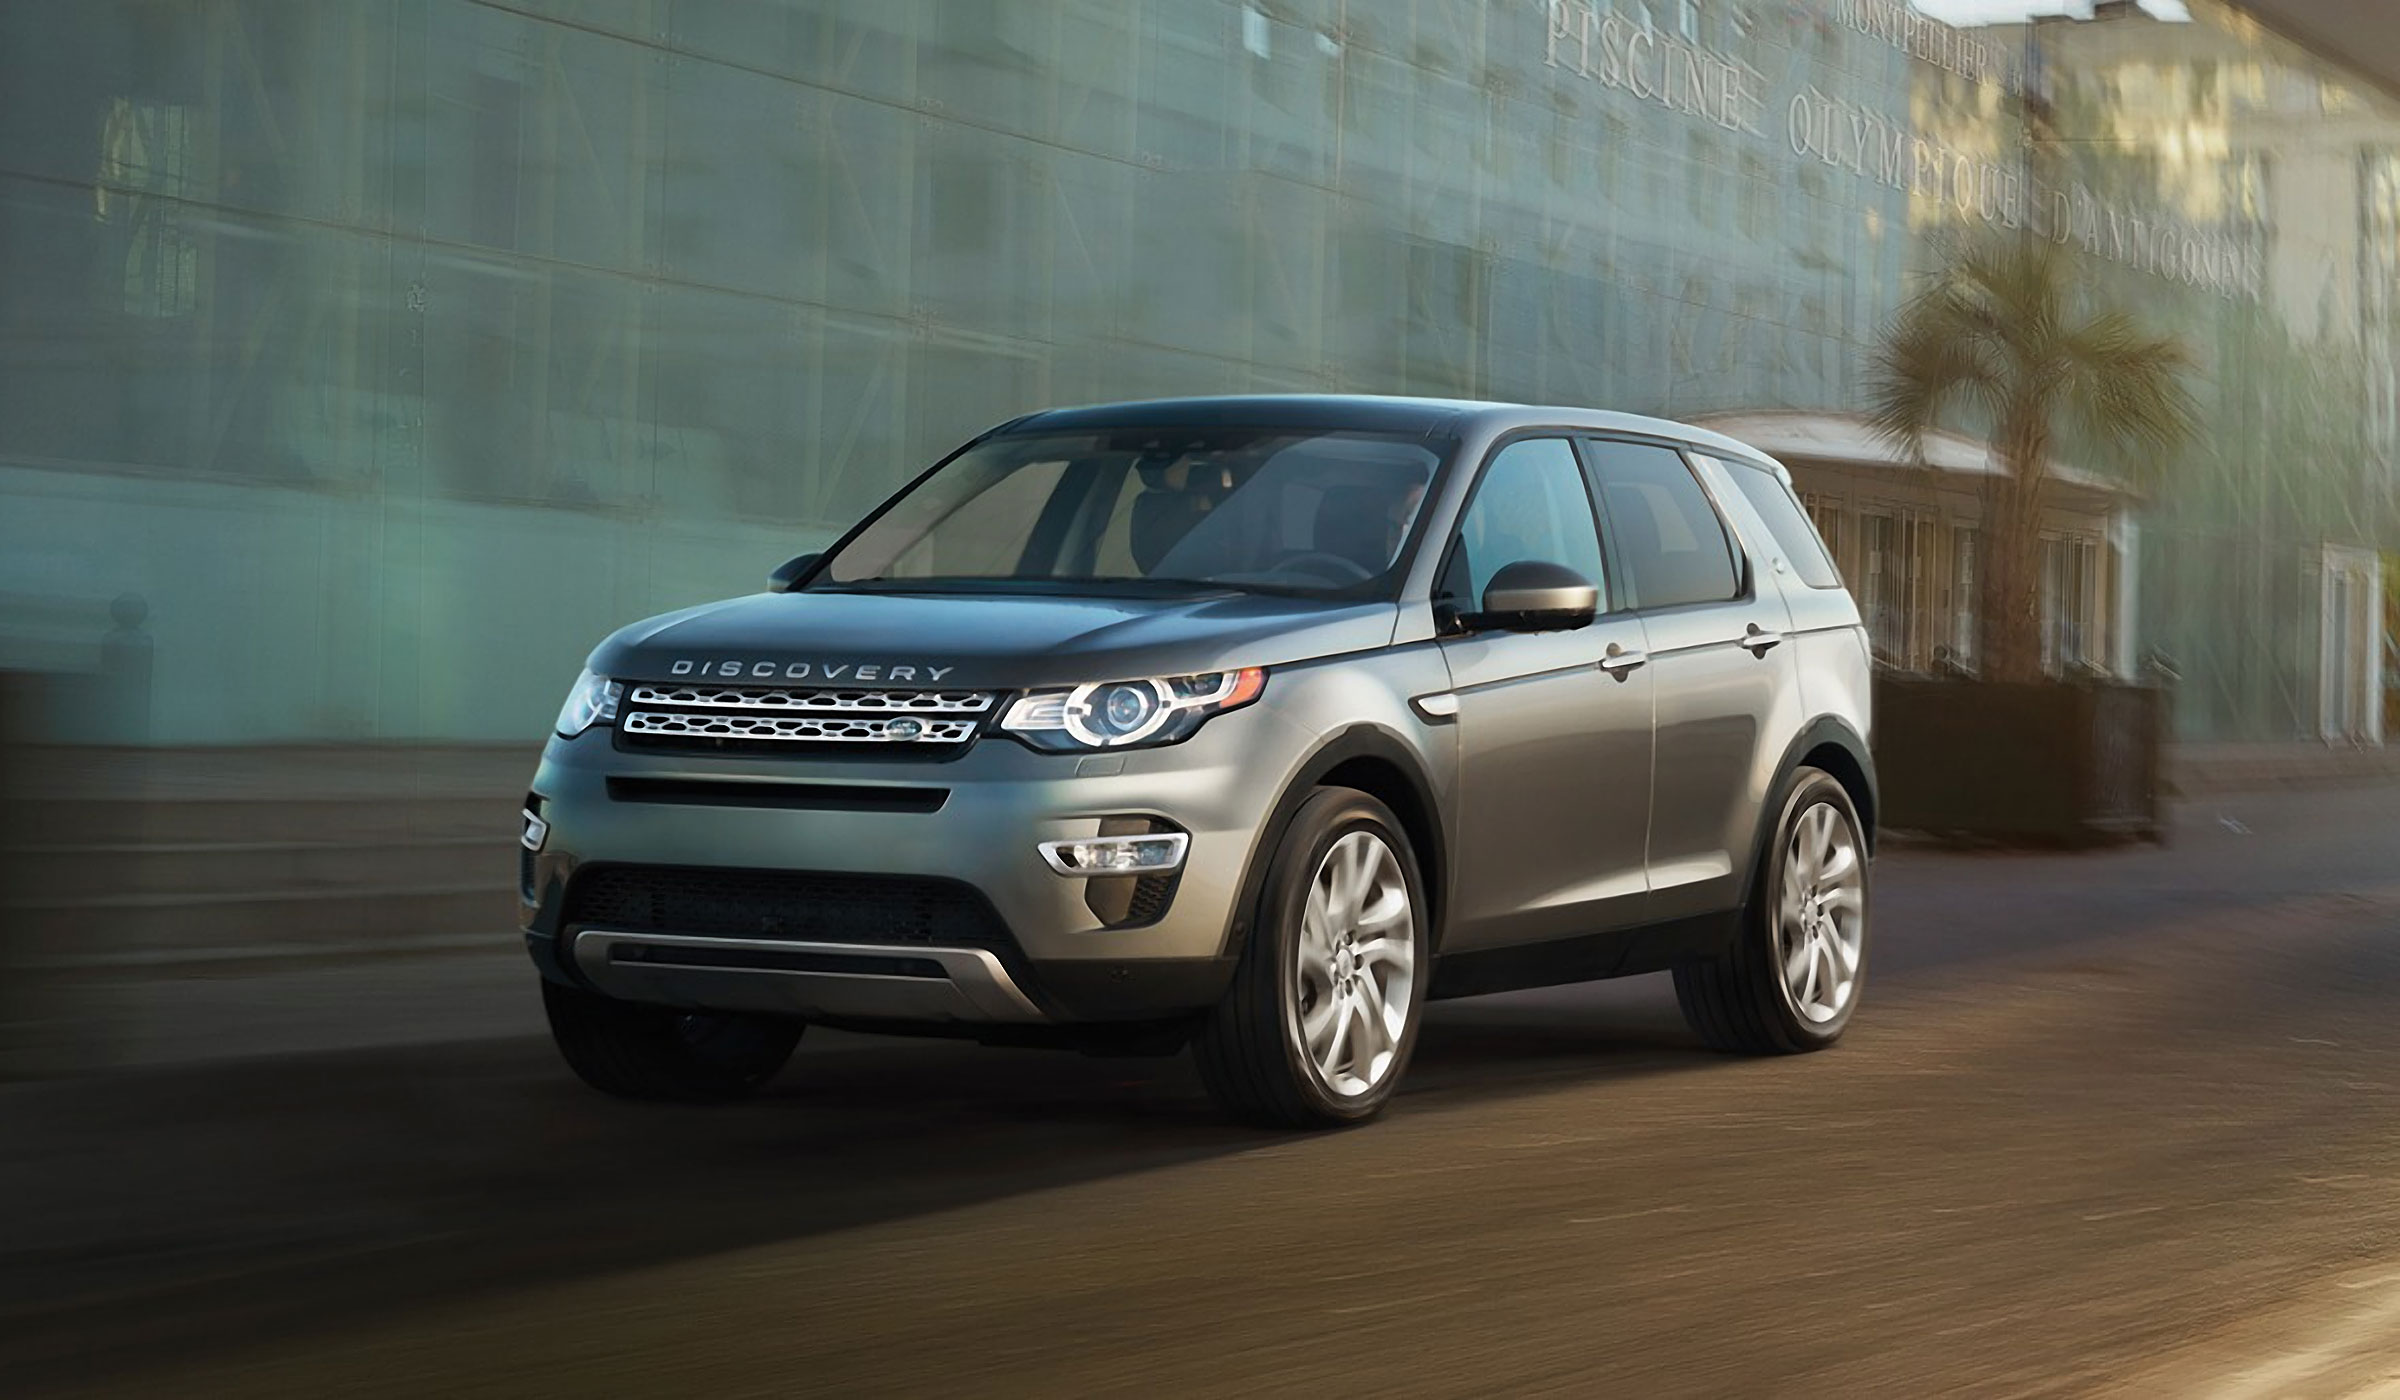 2021 Land Rover Discovery Release Date, Price and Changes